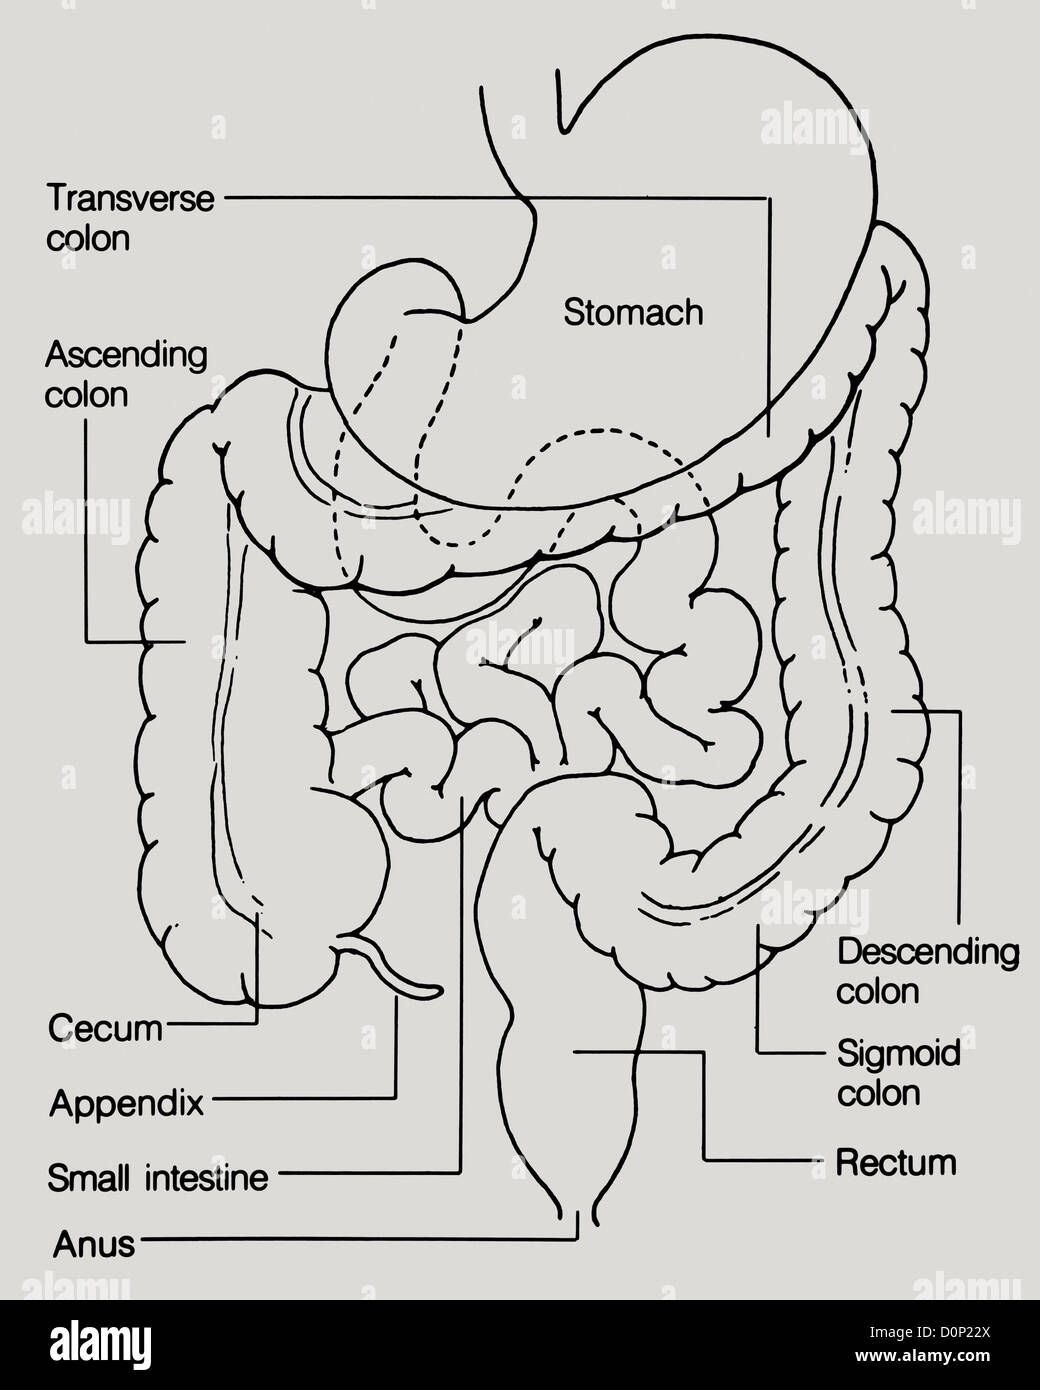 A line drawing showing the colon, rectum, stomach, cecum, appendix, small intestine, and anus. - Stock Image